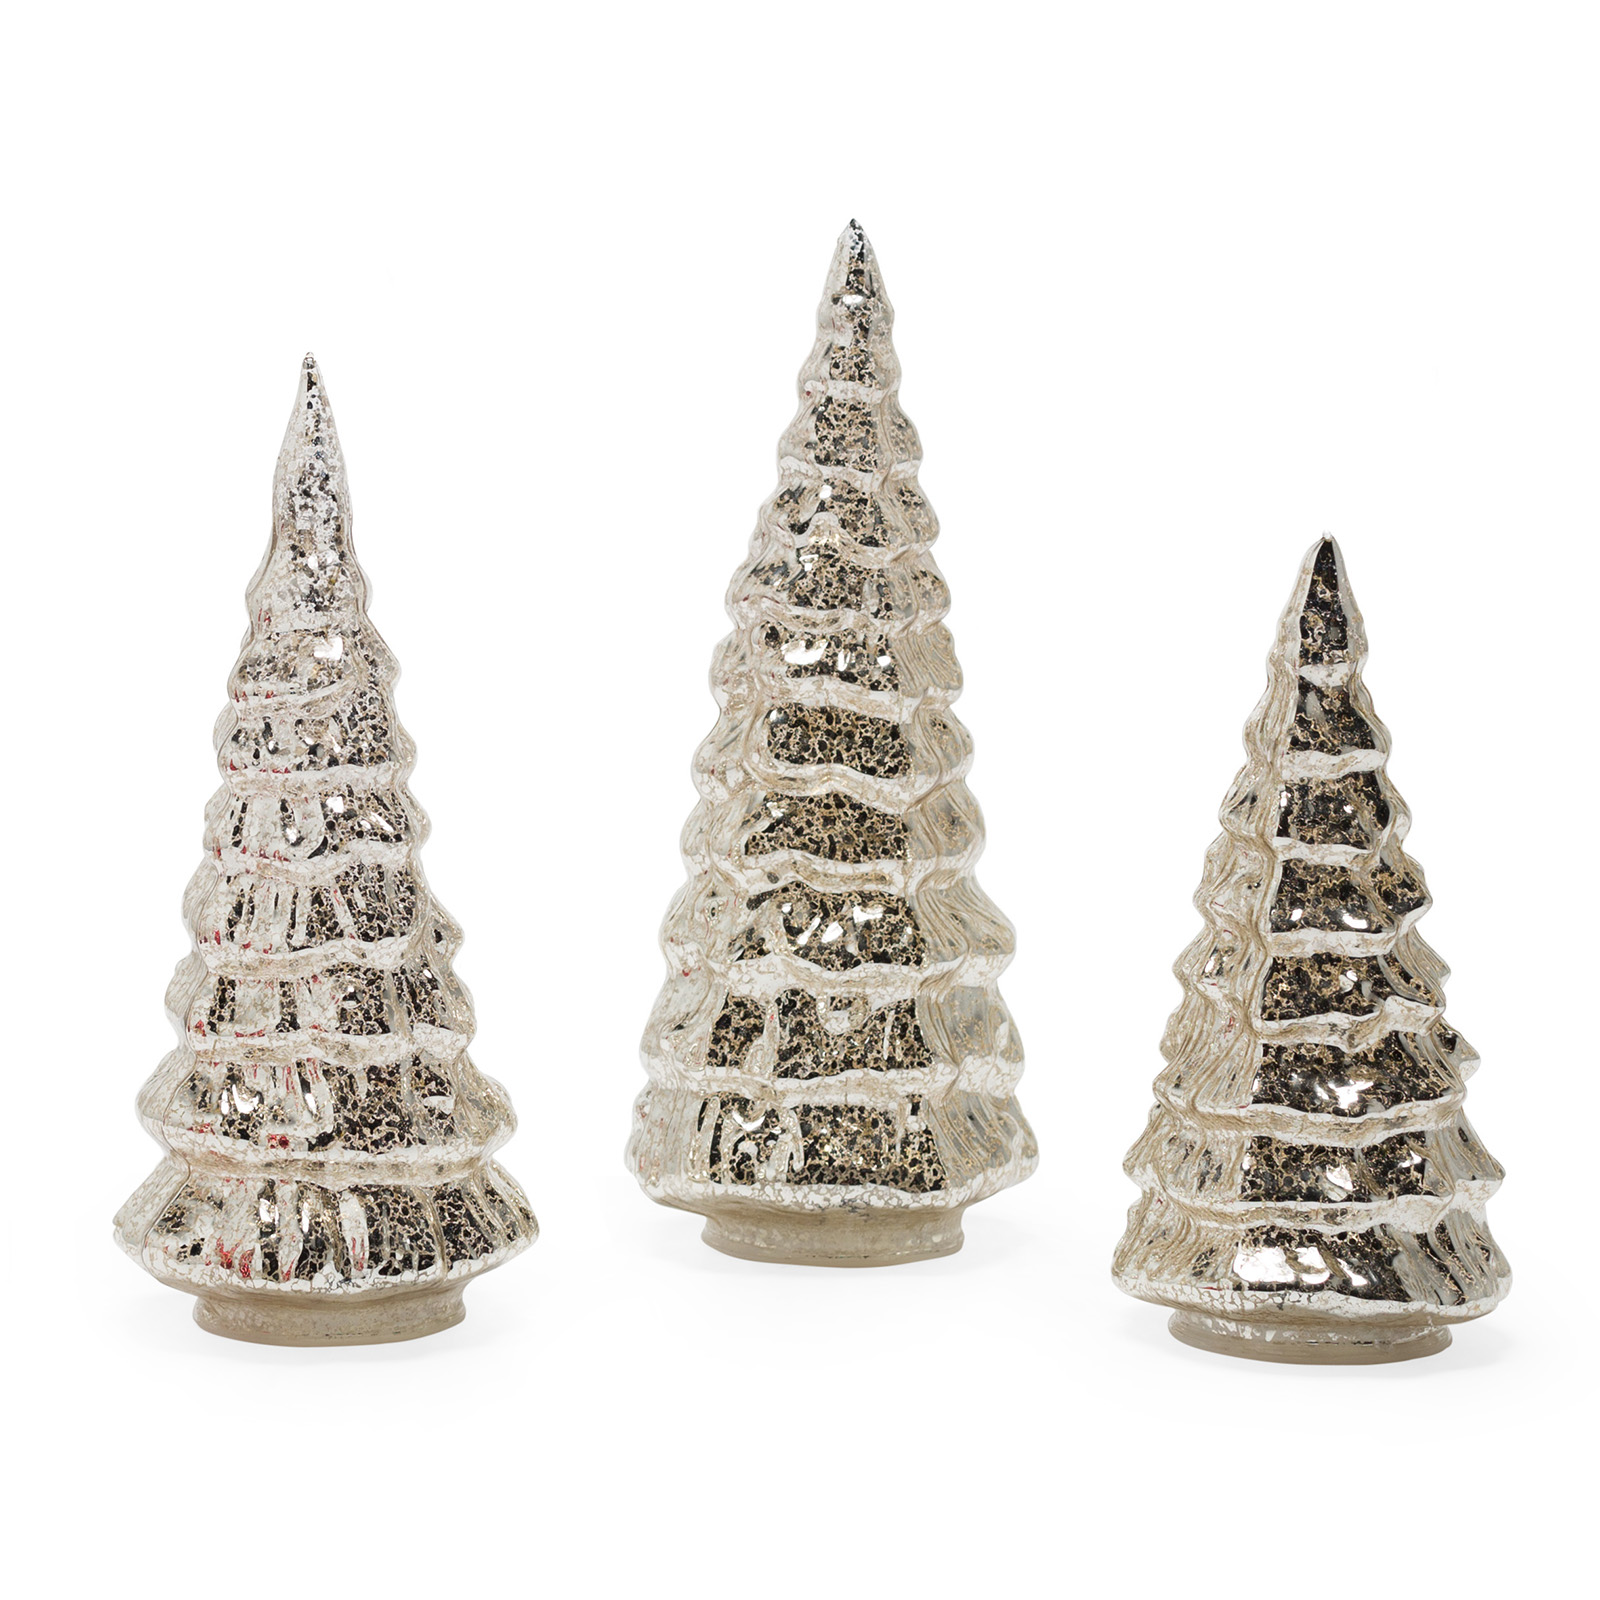 Belham Living Mercury Glass Christmas Trees set of 3, Silver